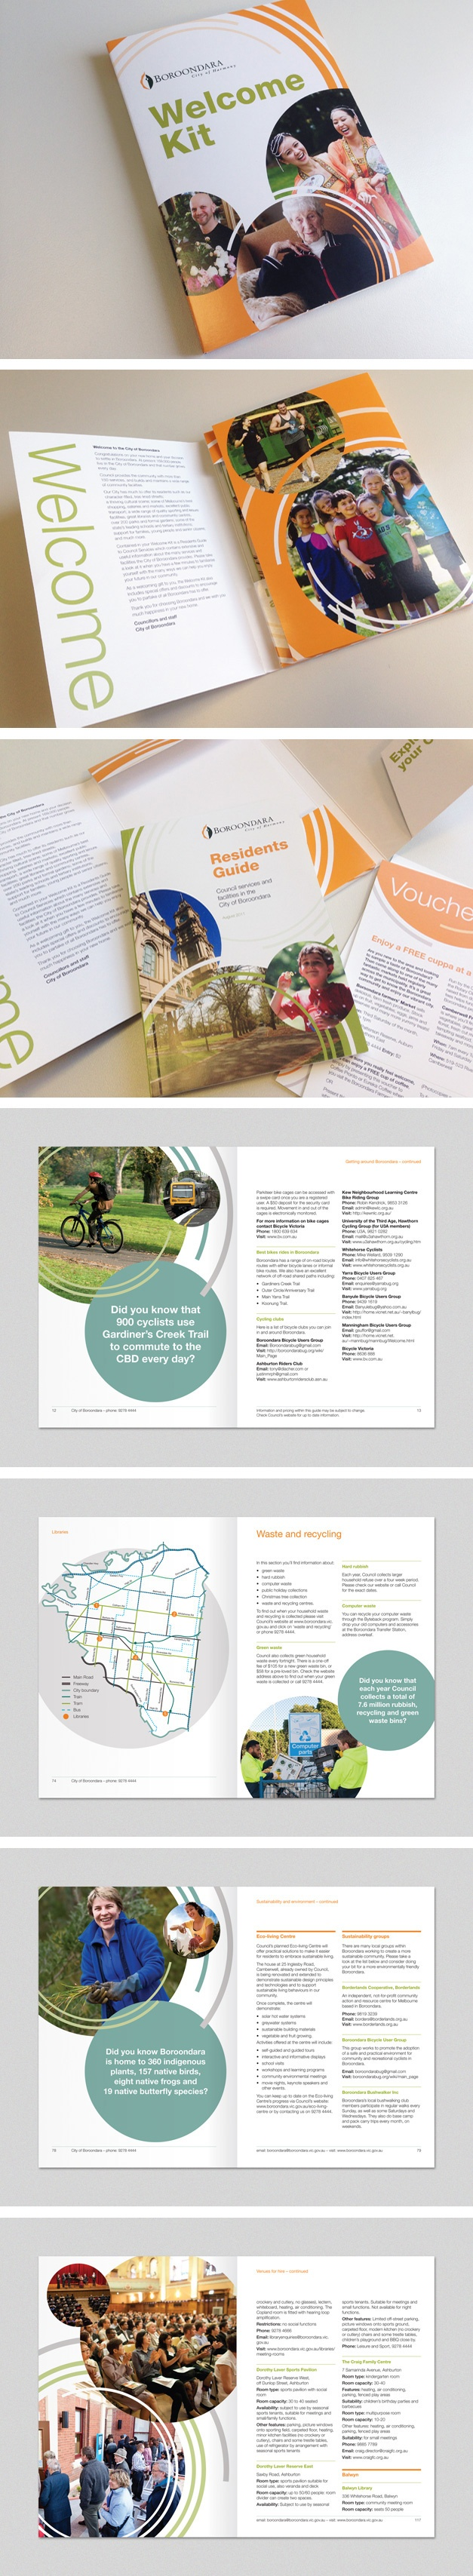 Residents Guide for City of Boroondara. www.fenton.com.au #communication #PR #branding #graphicdesign #brochure